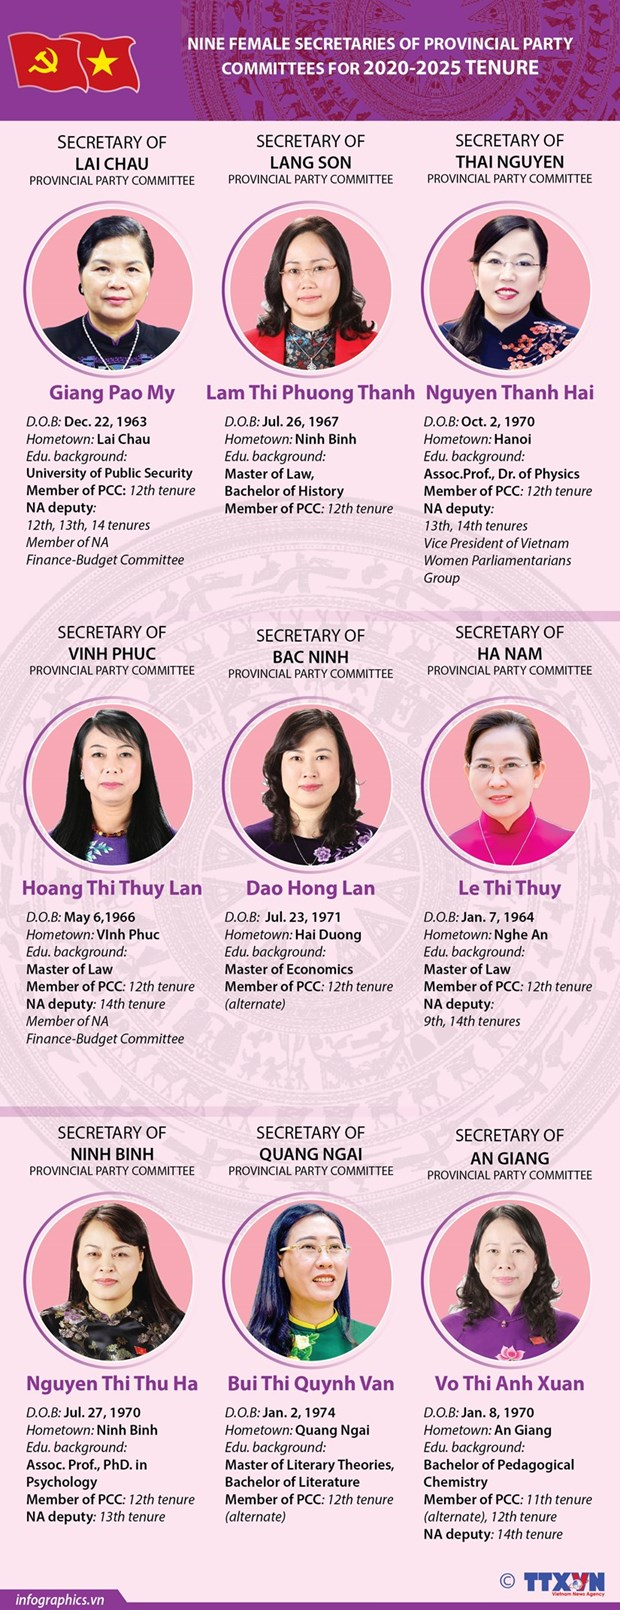 Vietnam pursues consistent policy on women's empowerment hinh anh 2